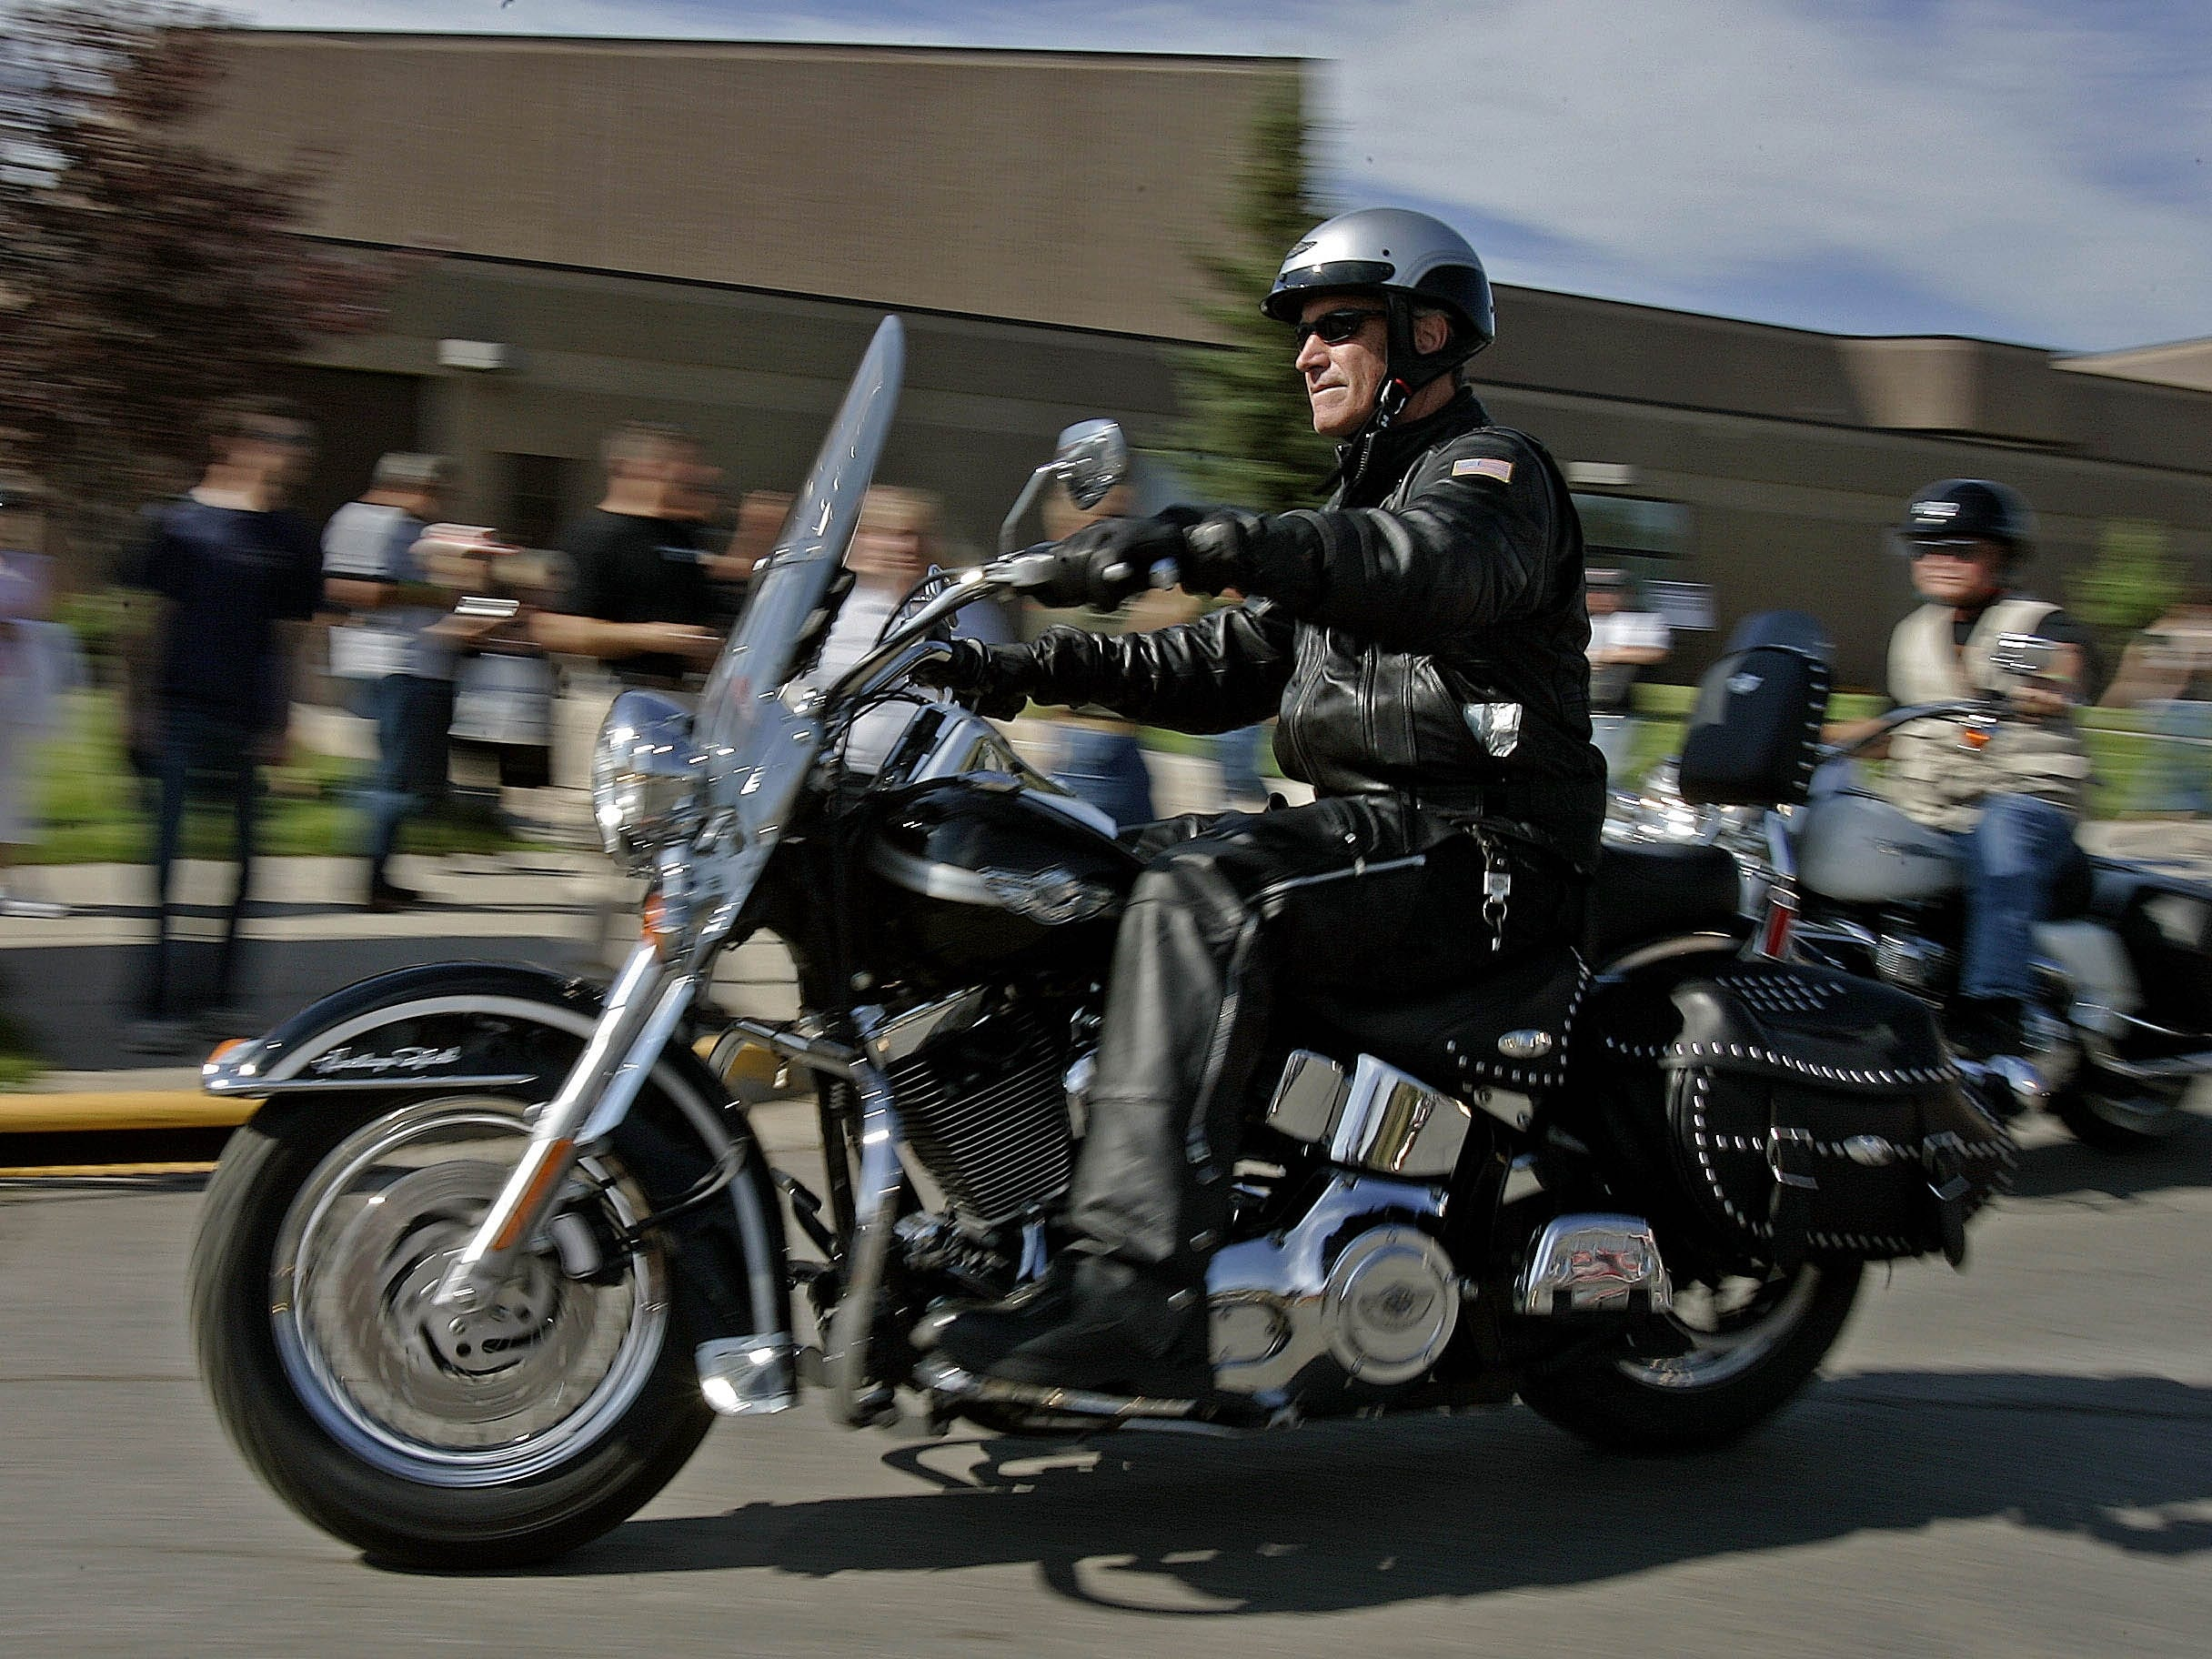 2006: U.S. Interior Secretary Dirk Kempthorne rides a motorcycle at the Sturgis Motorcycle Rally in Sturgis, S.D.